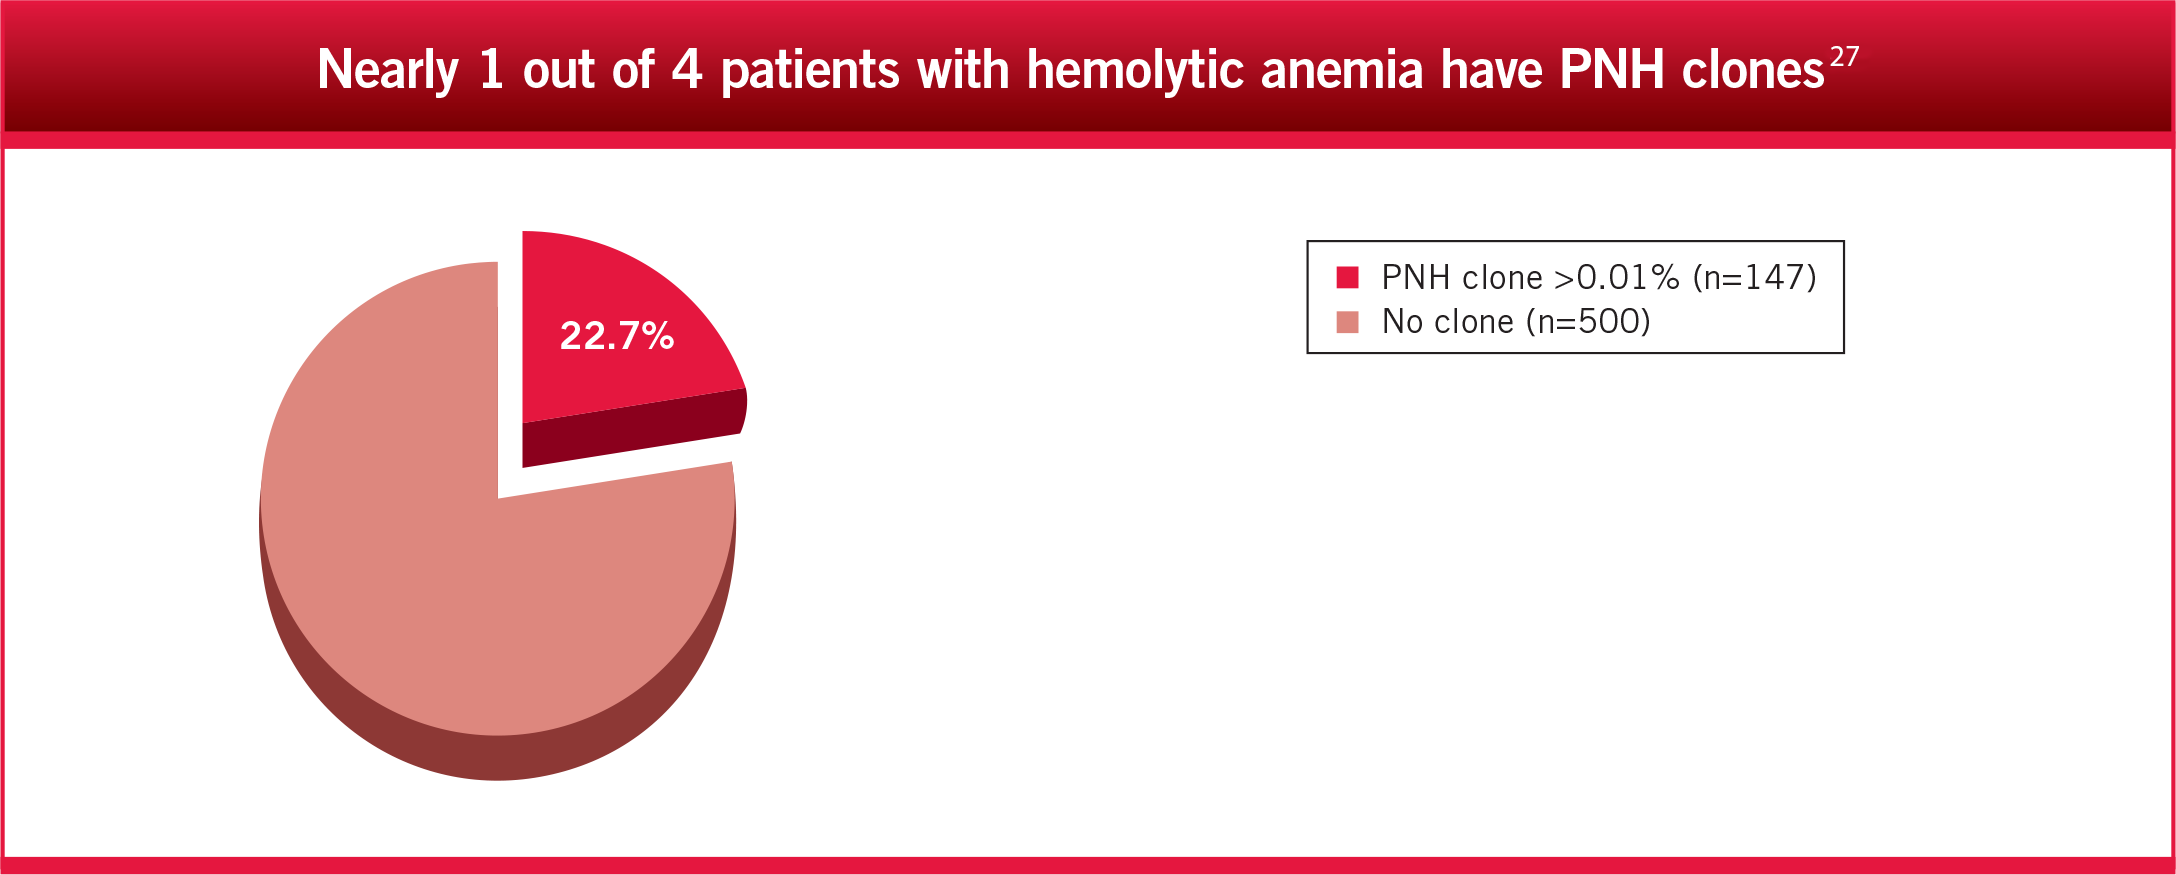 Nearly 1 out of 4 patients with hemolytic anemia have PNH clones3